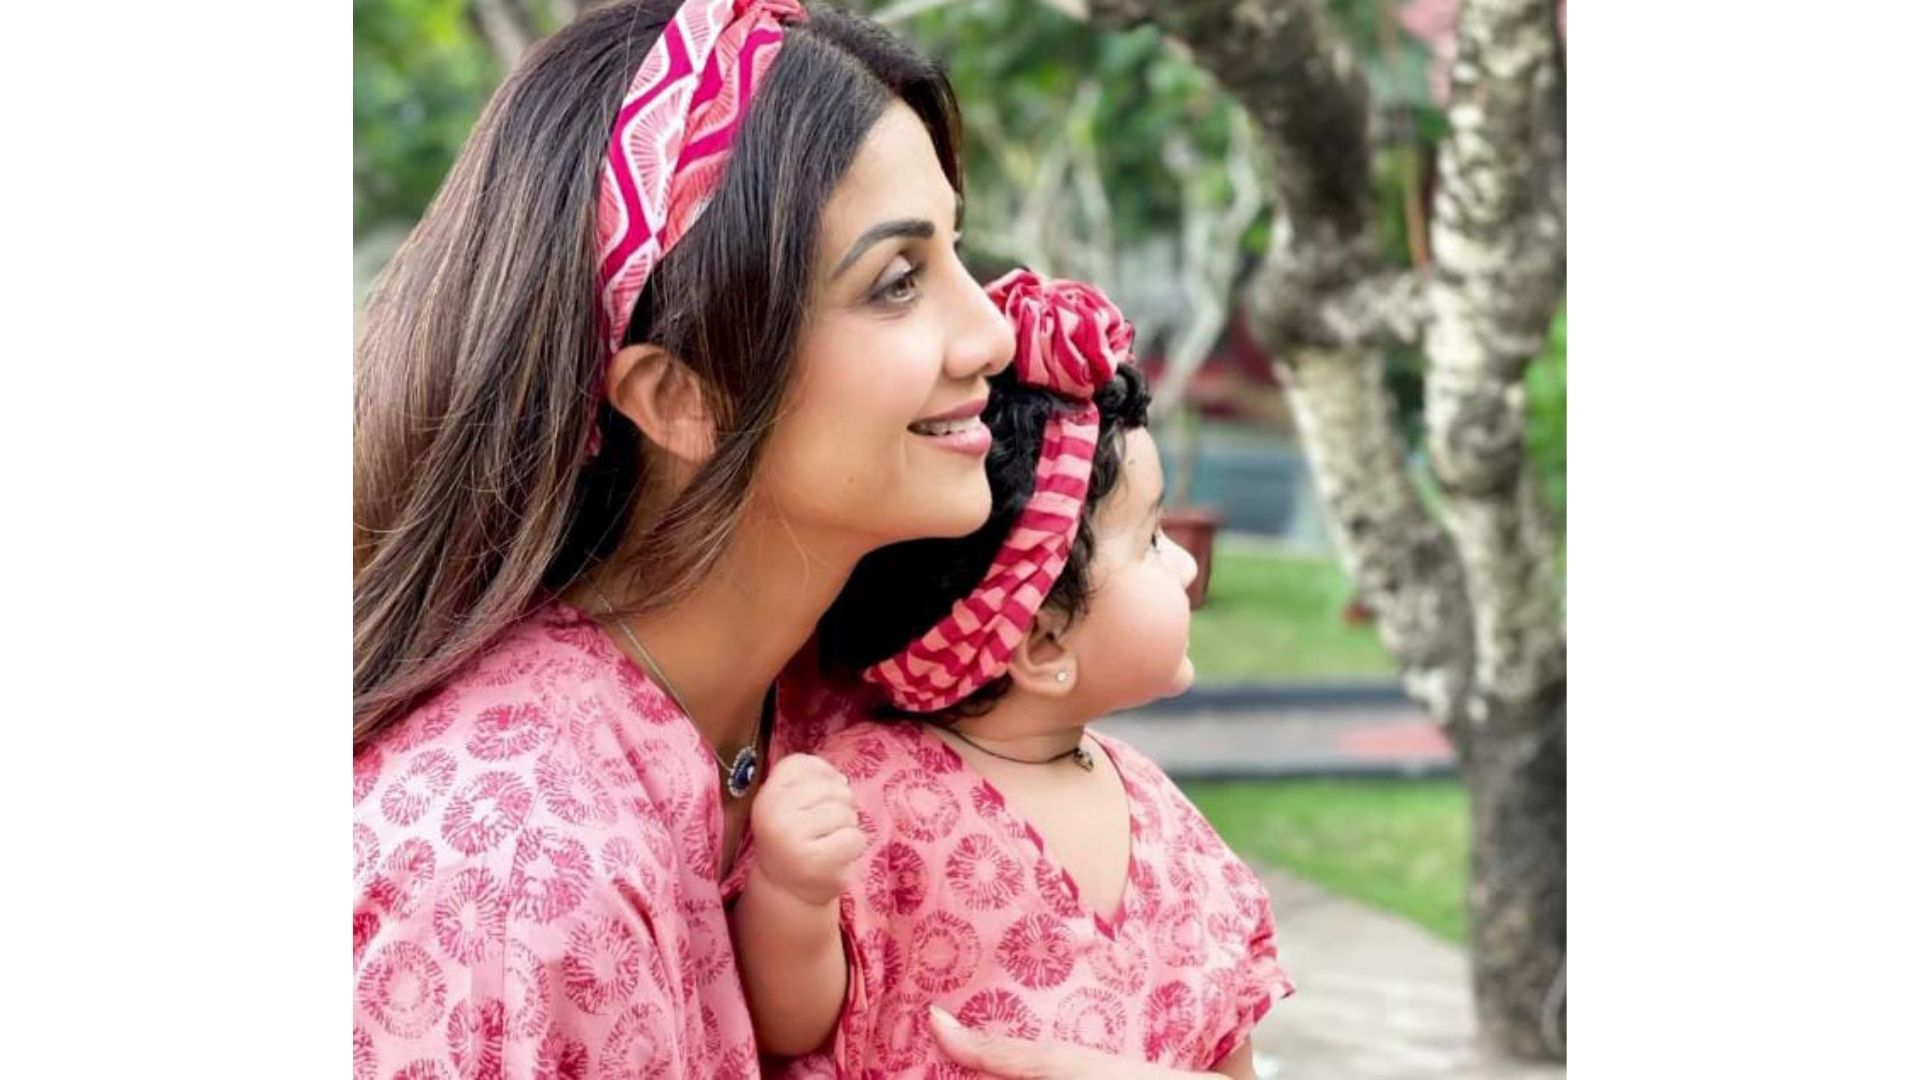 Shilpa Shetty Shares A Twinning Video With Daughter Shamisha Shetty And Their Cuteness Will Melt Your Hearts